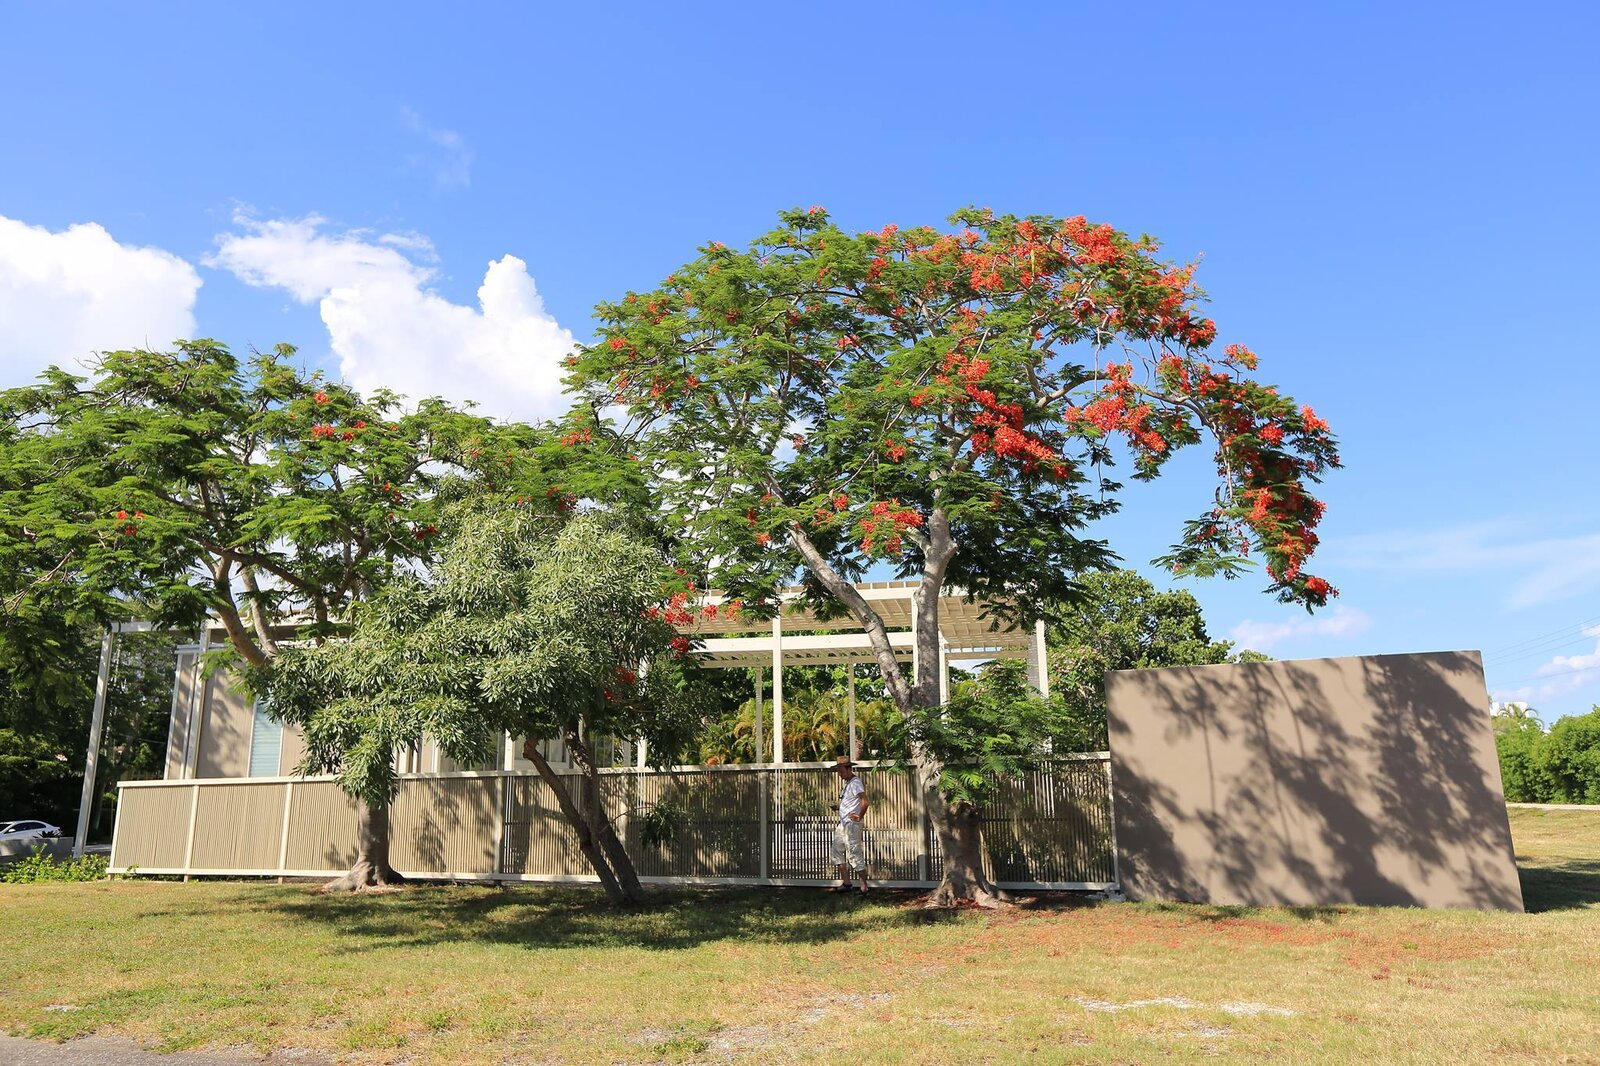 Outdoor, Trees, Concrete Fences, Wall, Landscape Lighting, Side Yard, and Grass Westside Poinciana tree  Umbrella House